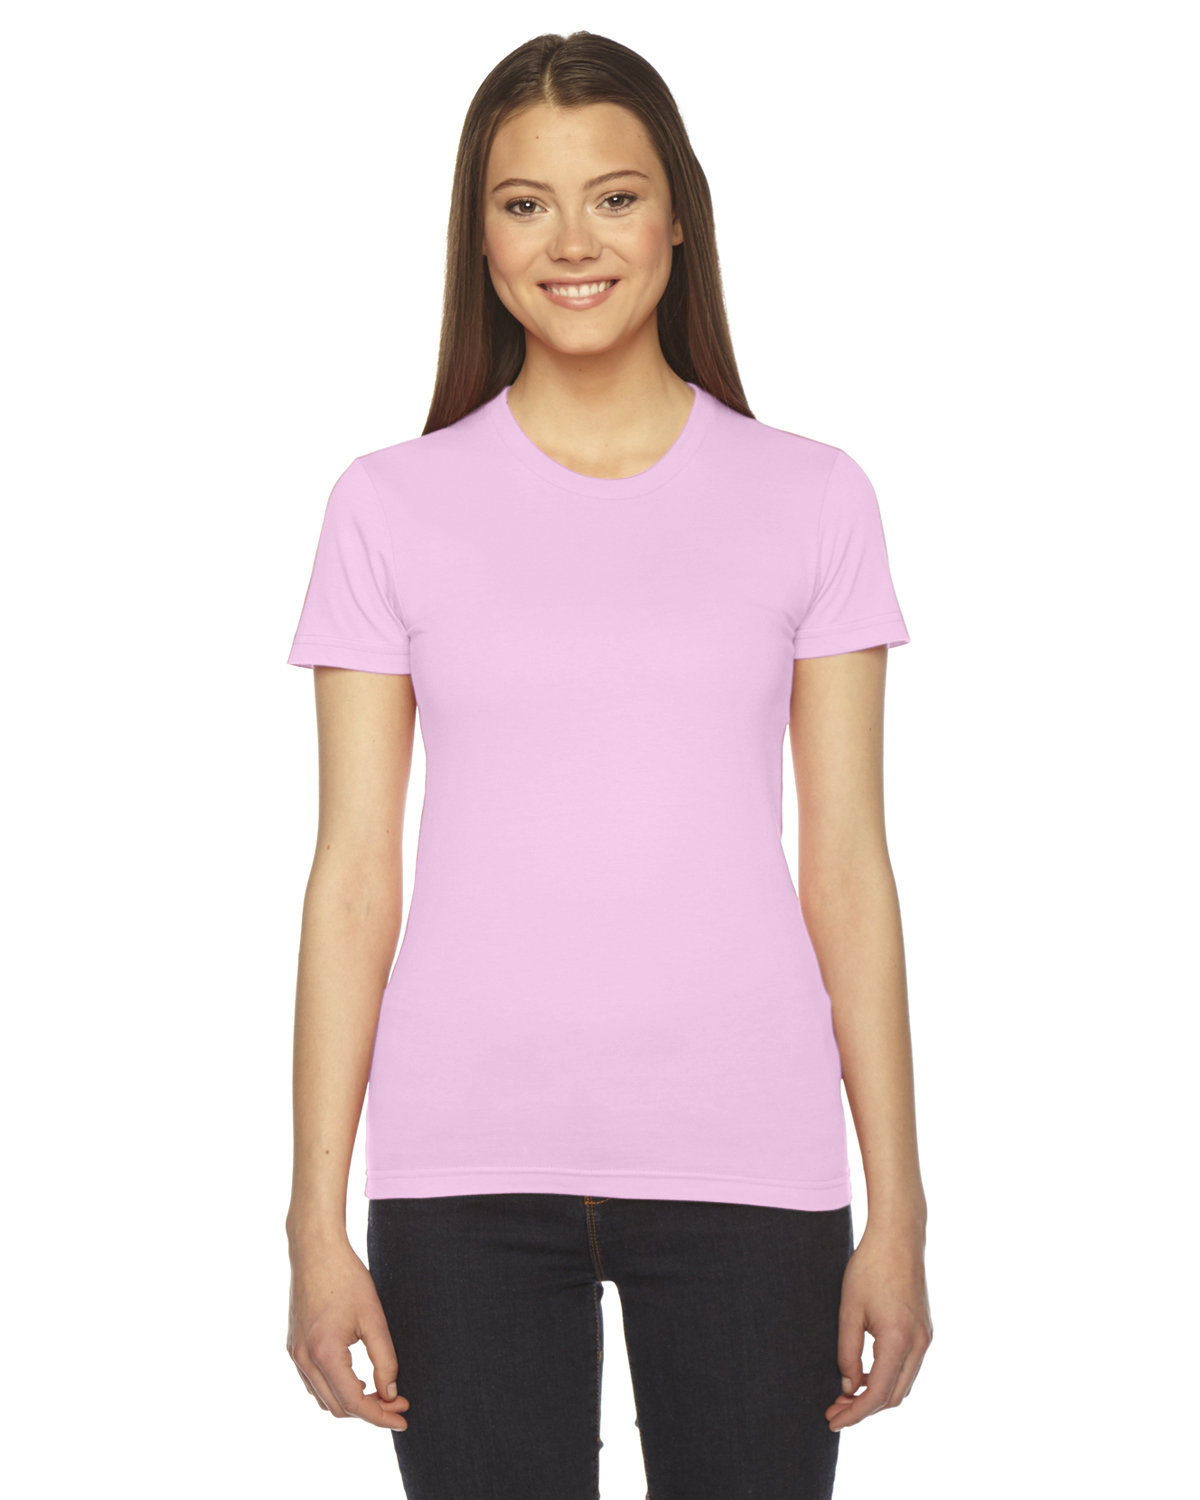 American Apparel Ladies' Fine Jersey Short-Sleeve T-Shirt LIGHT PINK